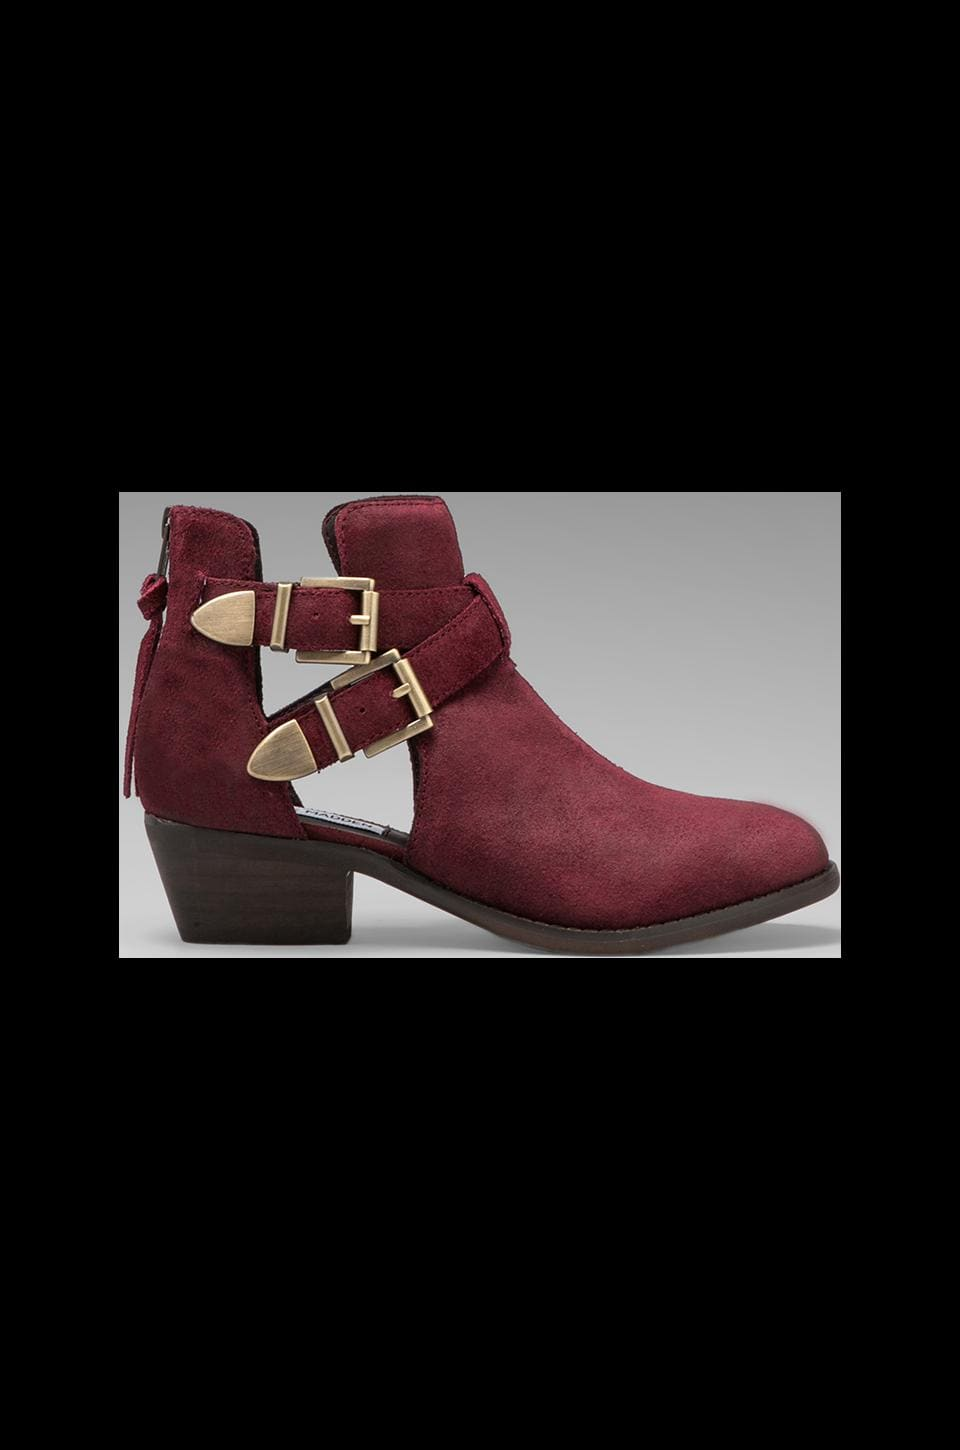 Steve Madden Cinch Bootie in Burgundy Suede